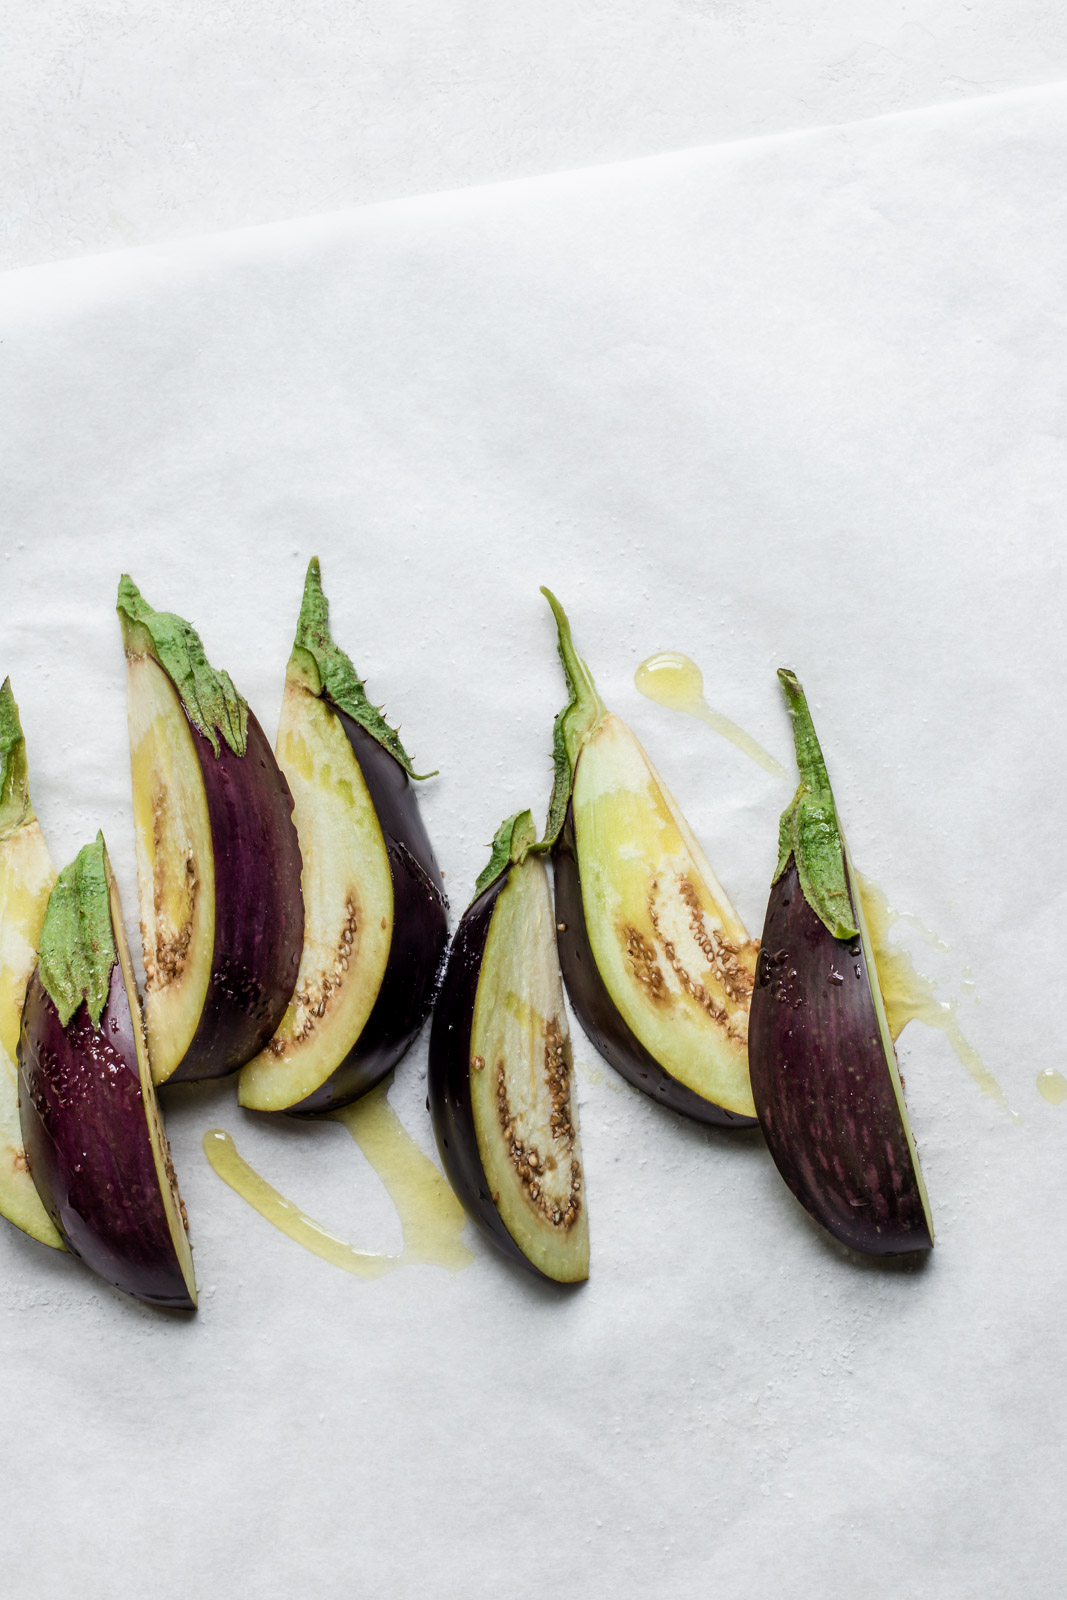 Row of purple eggplant wedges drizzled with olive oil